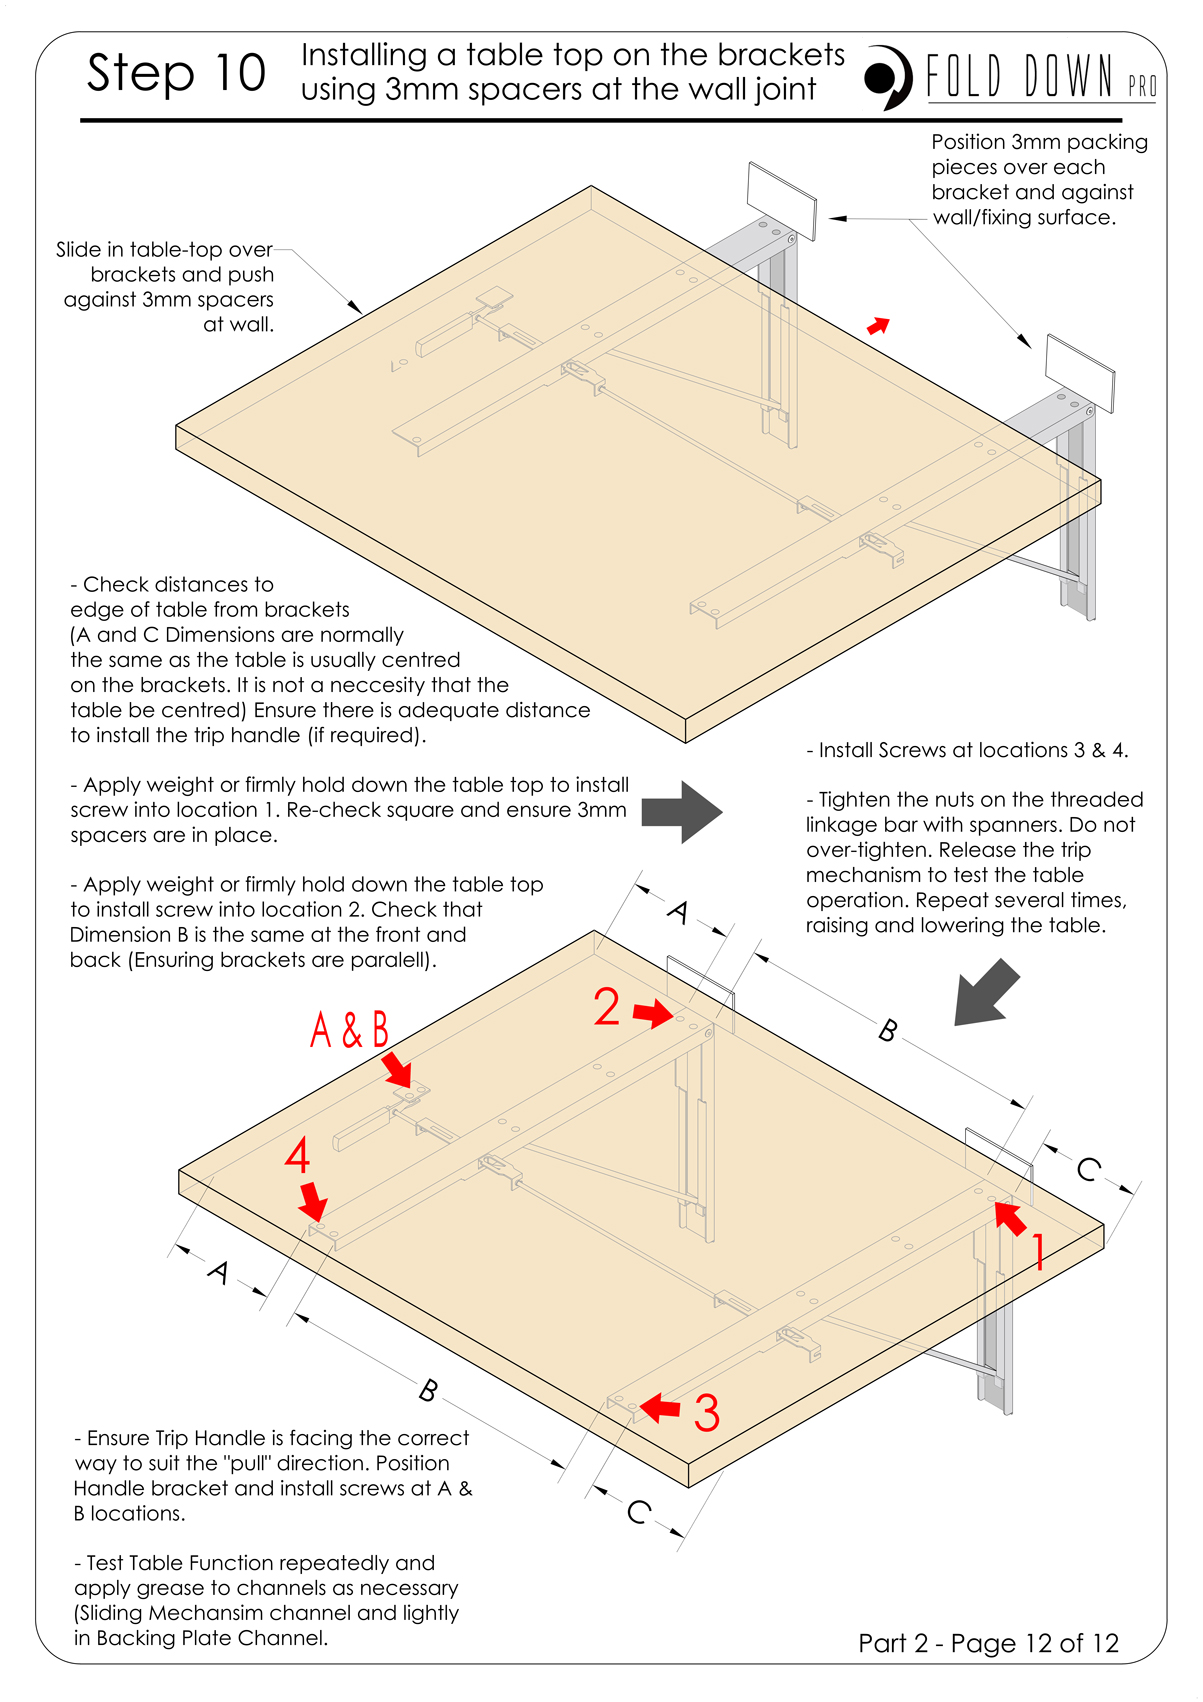 FDP Wall Mounted Folding Bracket Instruction Page 12